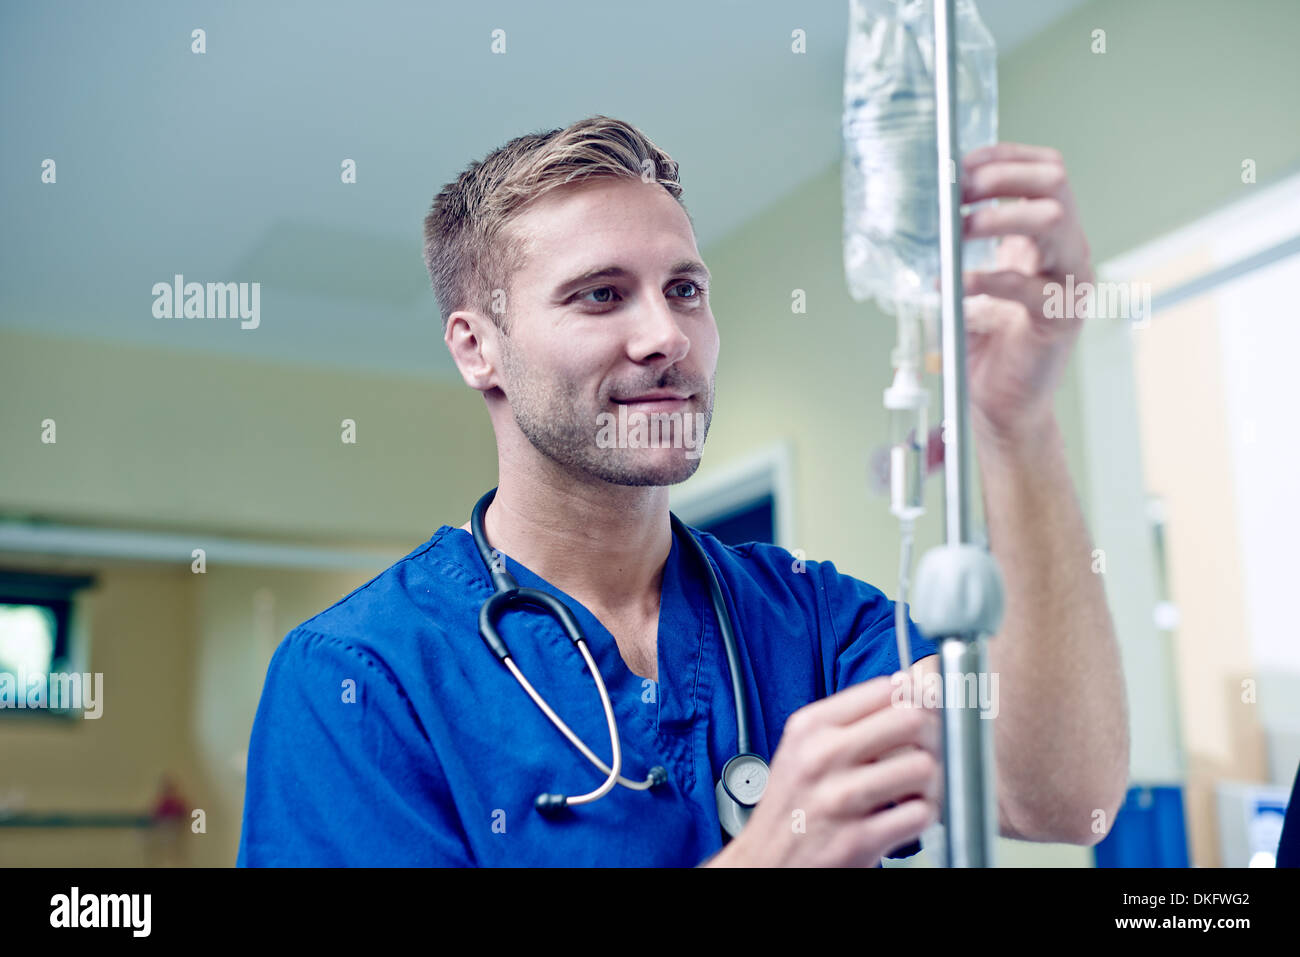 Doctor checking intravenous drip in hospital - Stock Image